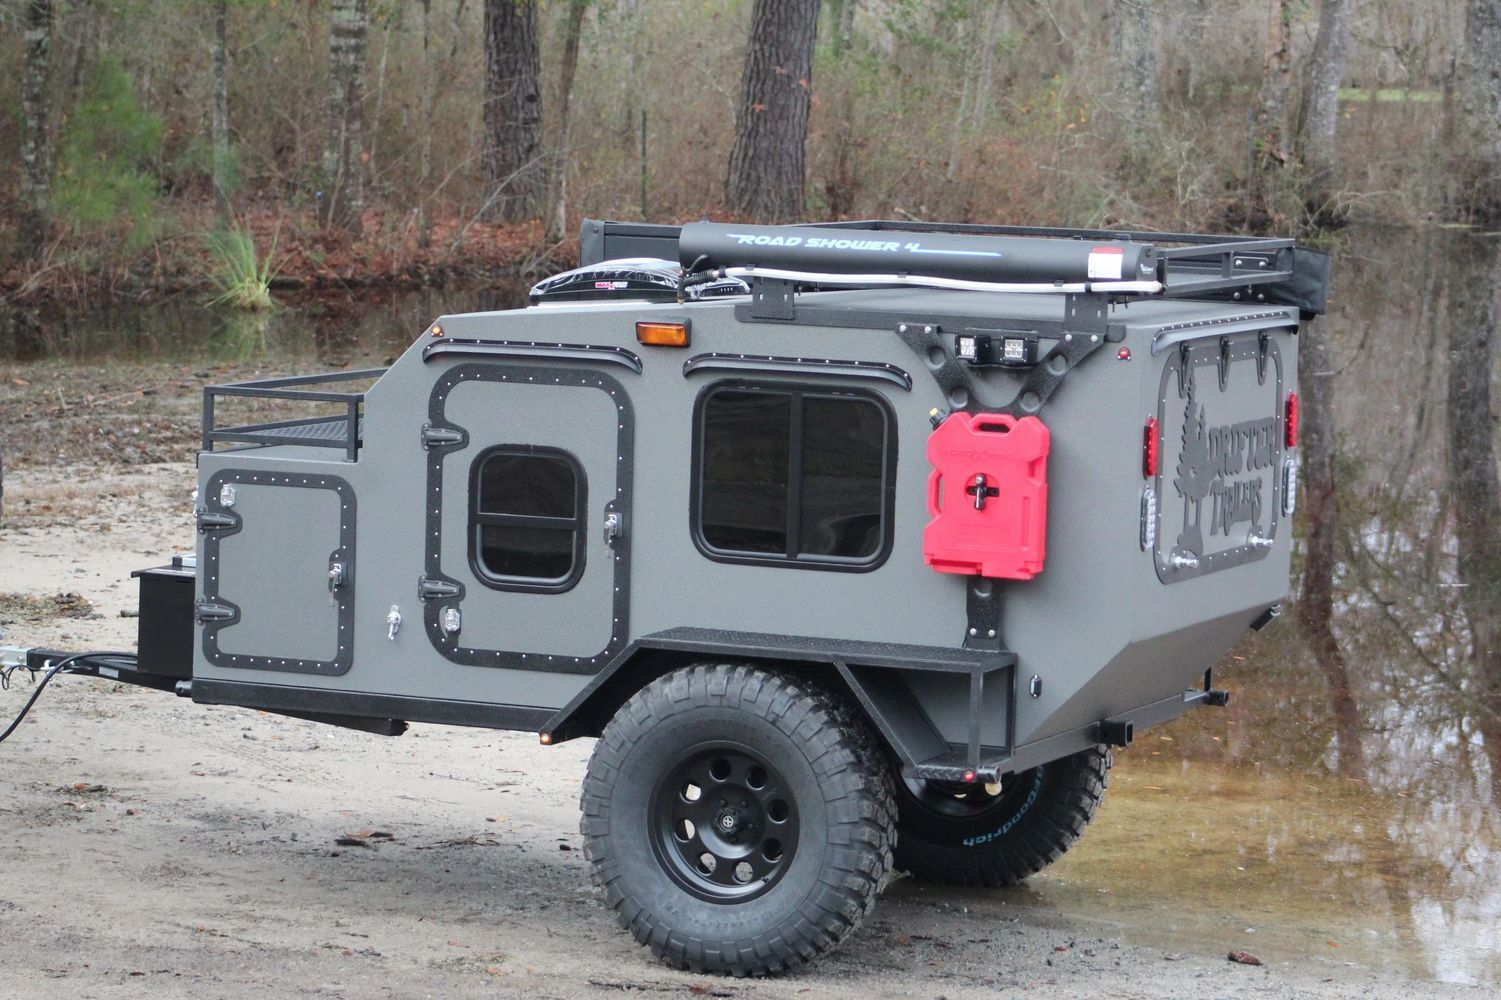 Photos Drifter Trailers Off Road Camper Trailer Overland